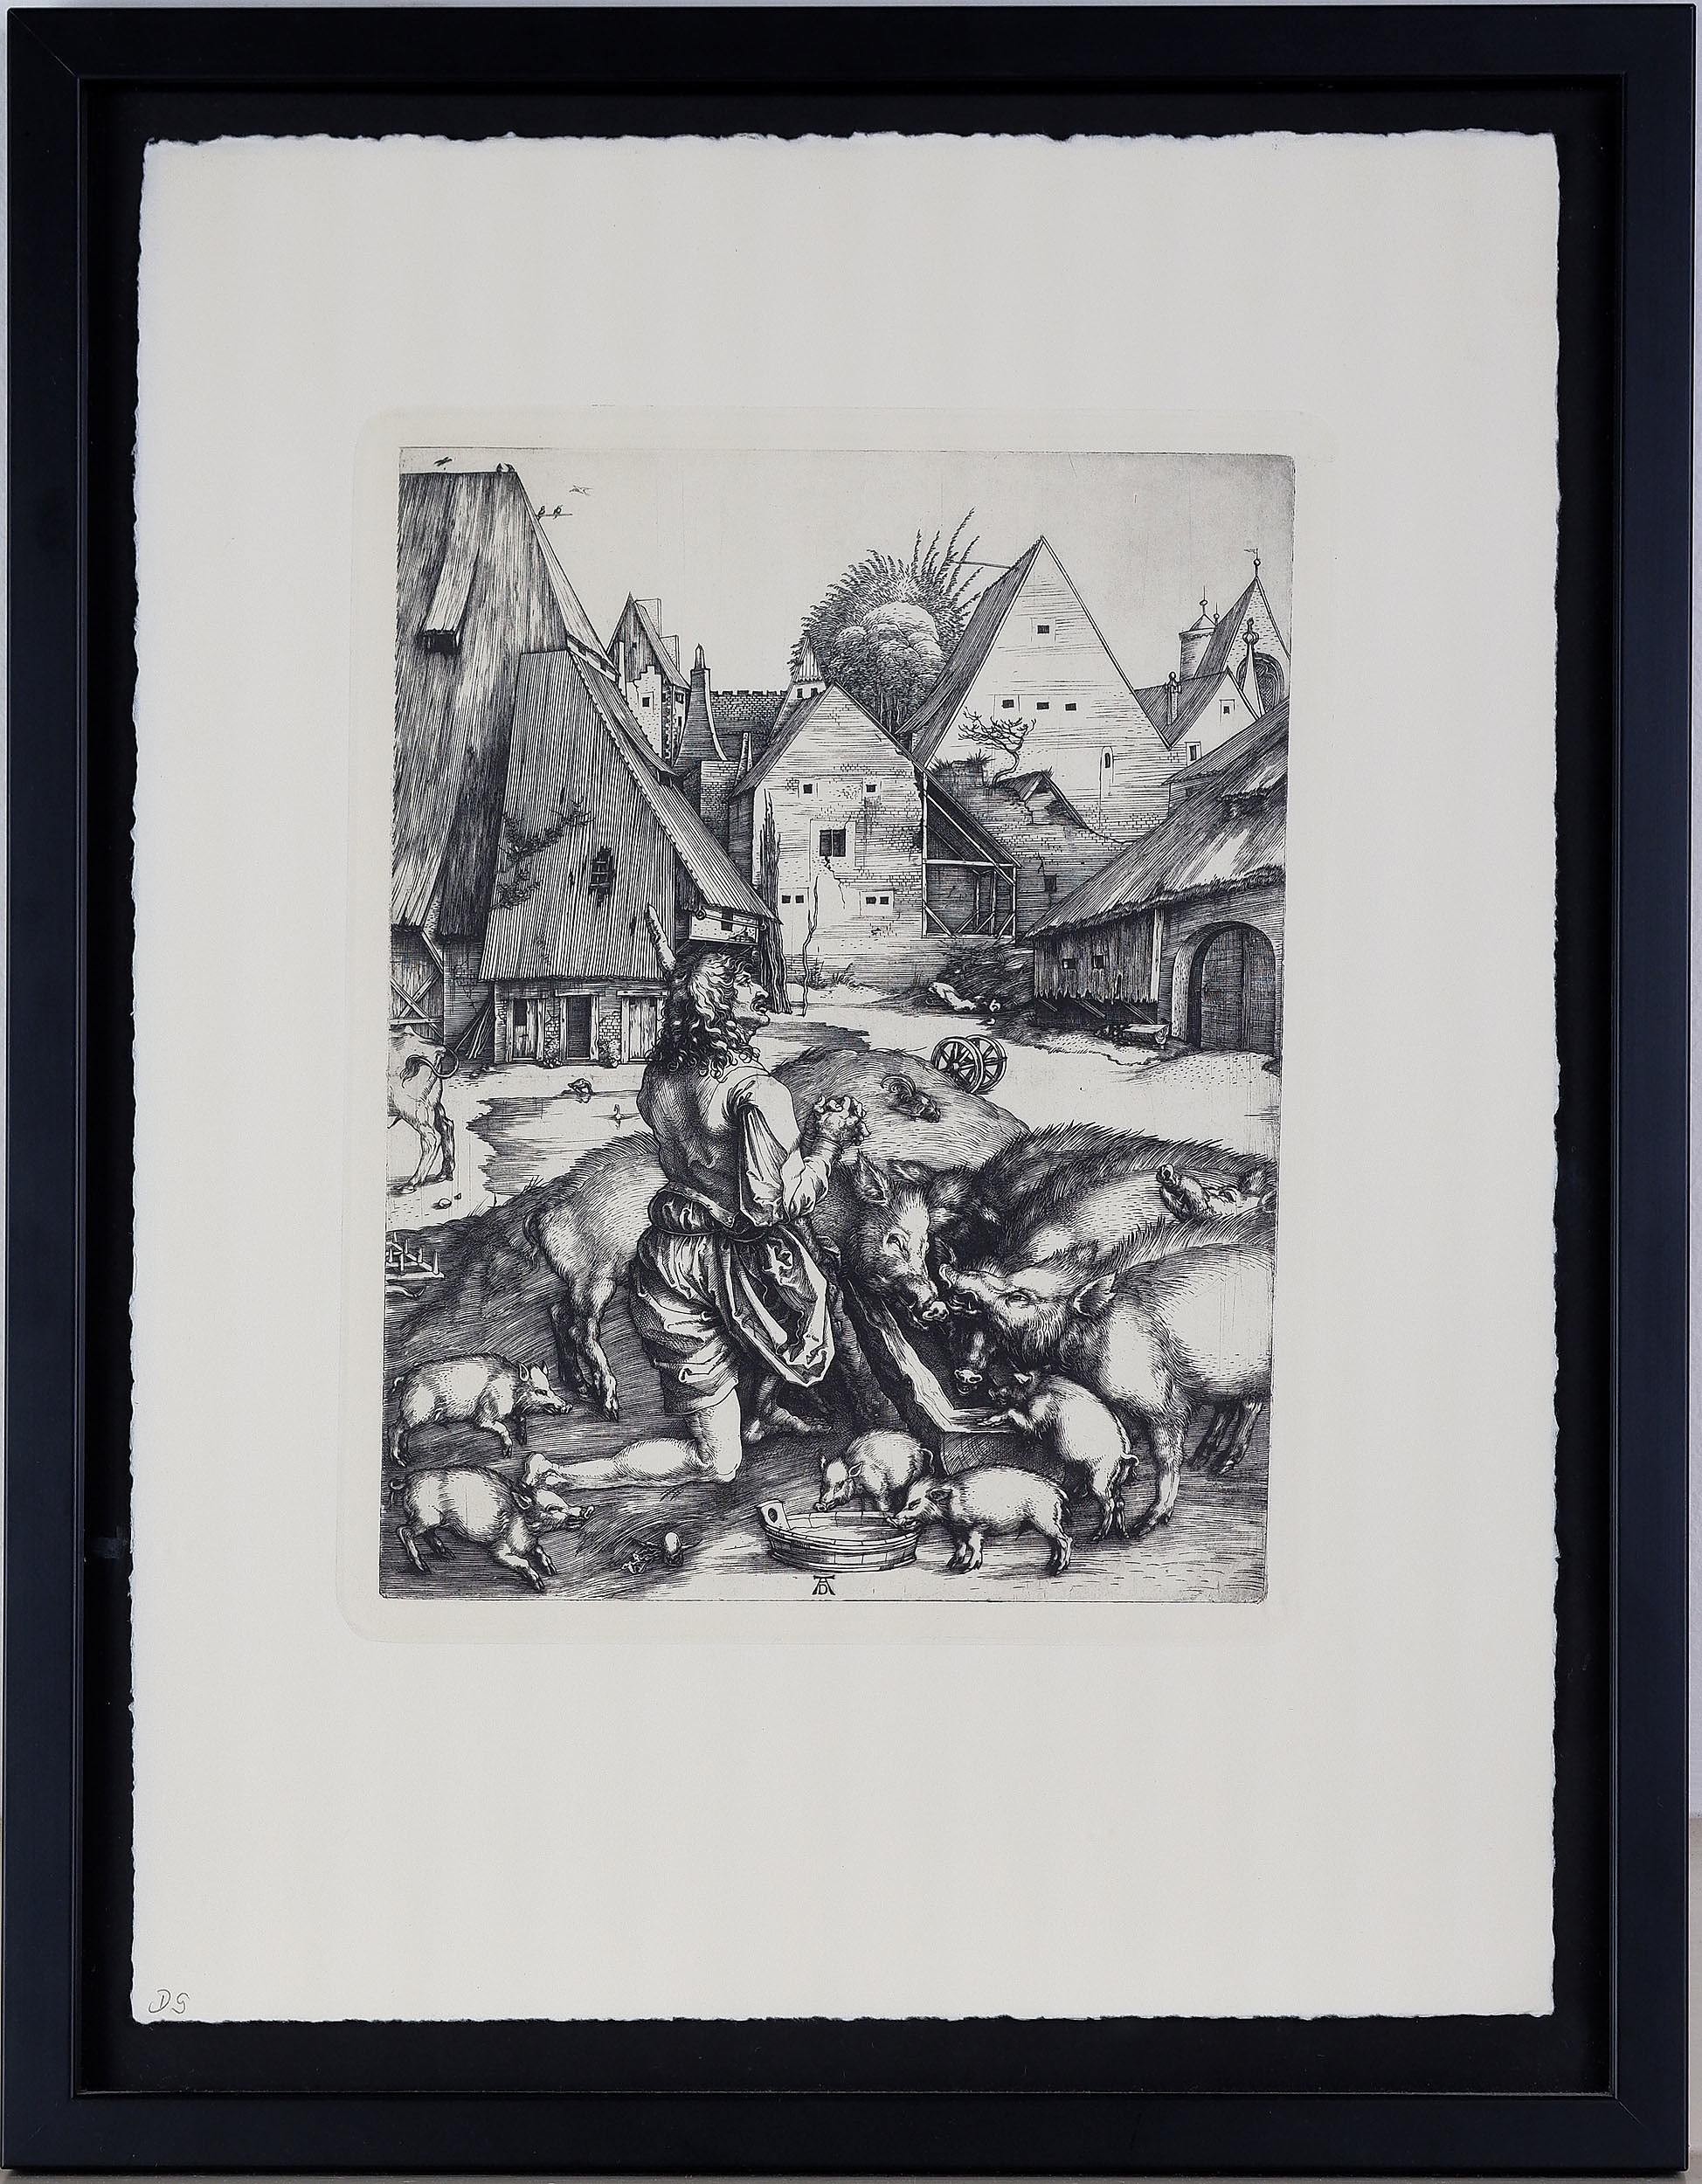 'Albrecht Durer (German 1471-1528) The Prodigal Son Among the Pigs 1497, Engraving, 20th Century Impression'